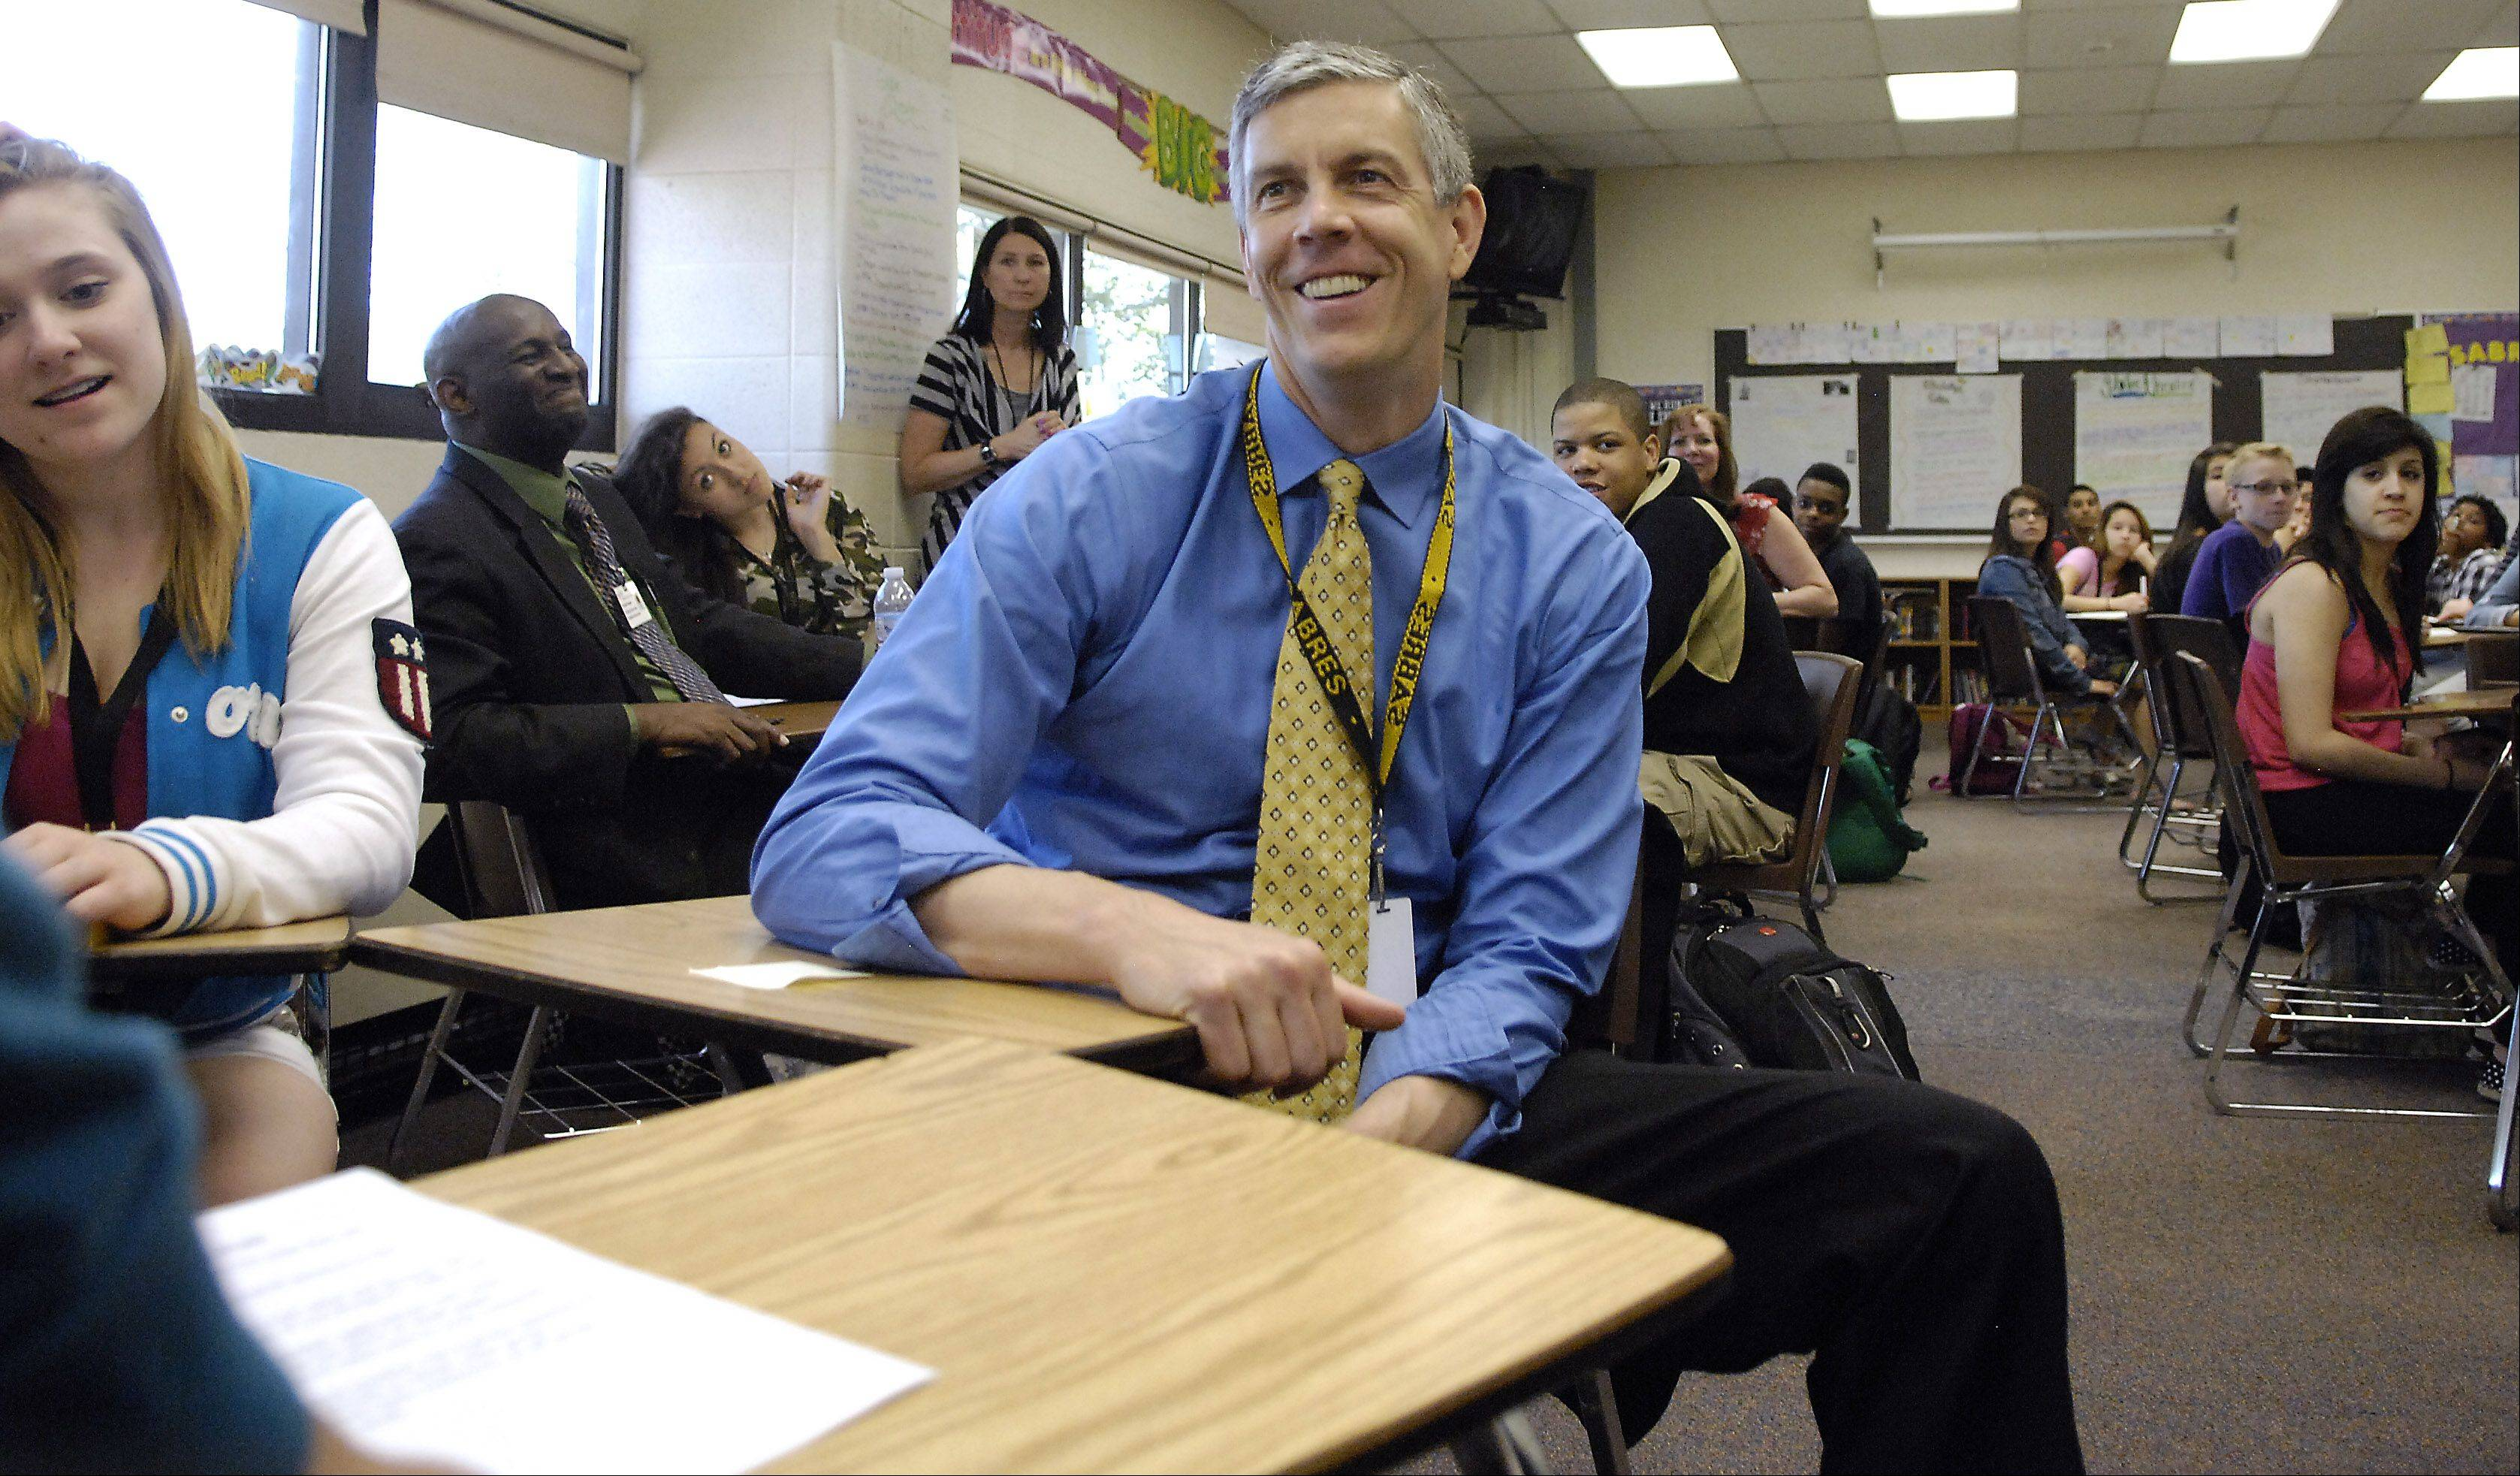 U.S. Secretary of Education Arne Duncan, who visited students at Streamwood High School in May, will tour Wheeling High School and its new nano technology laboratory on Thursday.